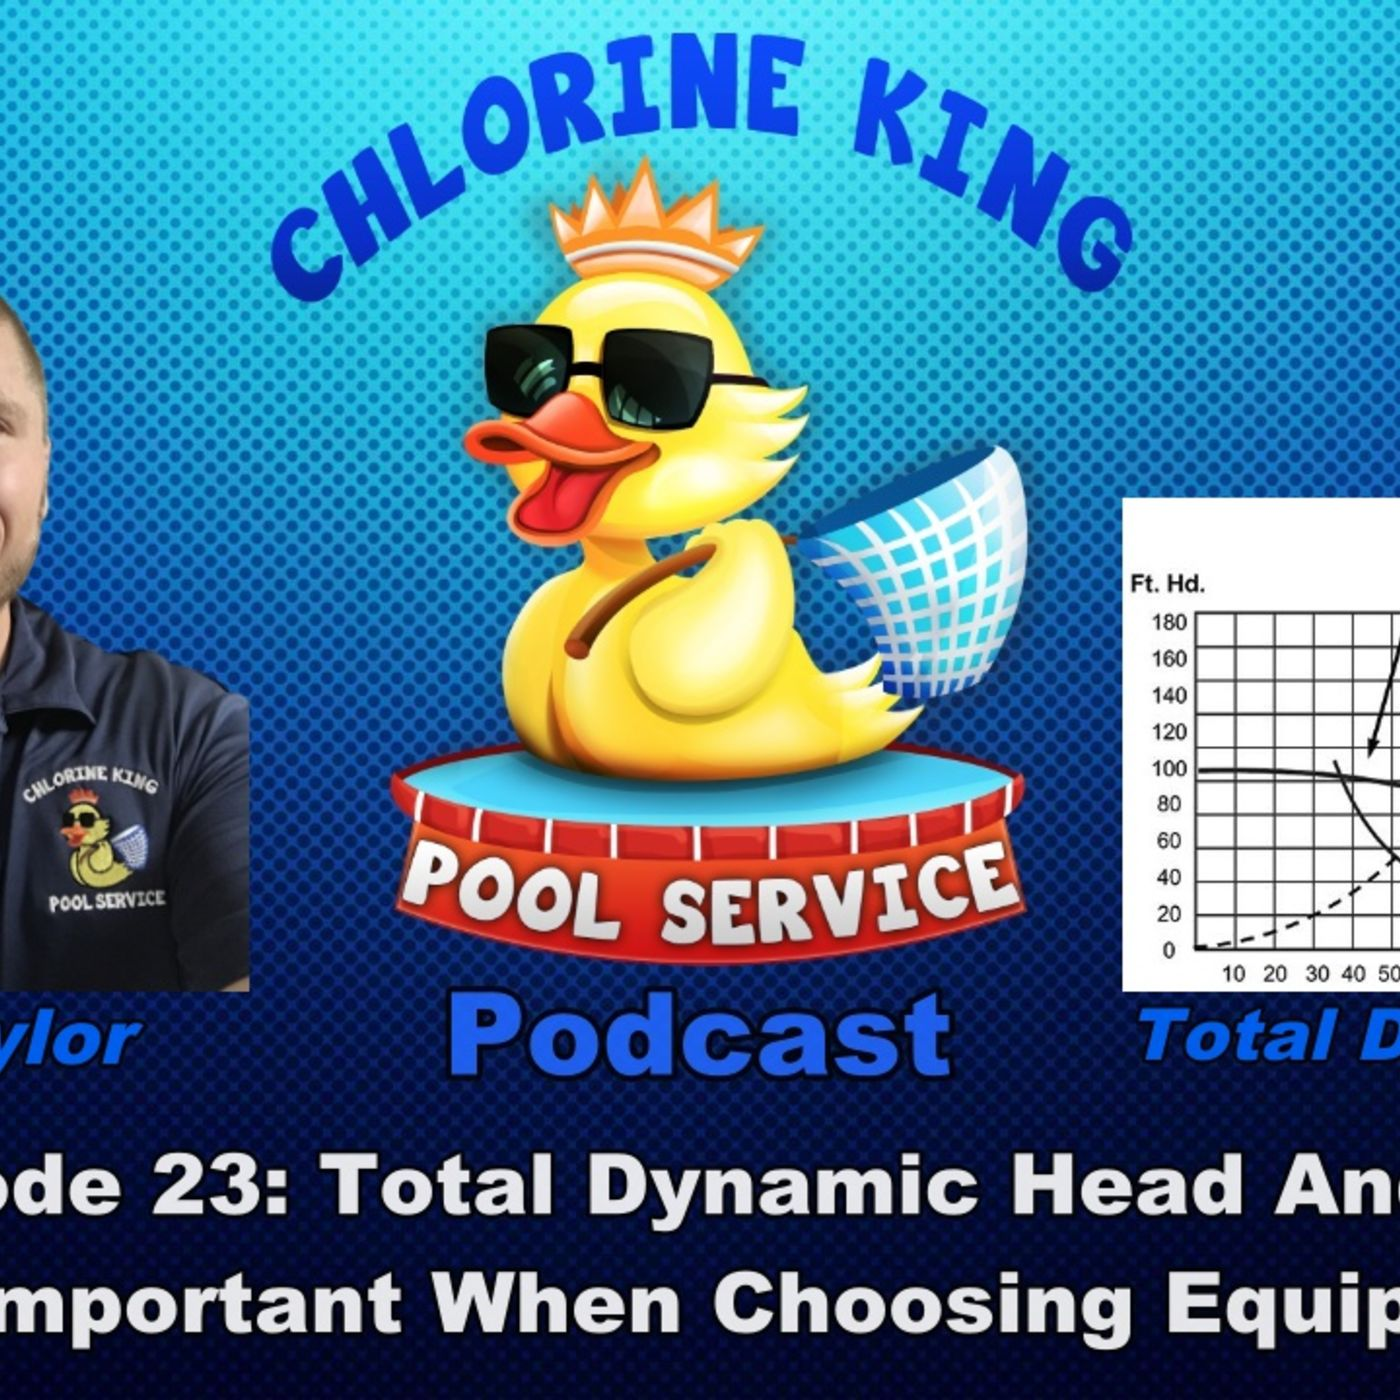 Episode 23 Total Dynamic Head Amp Why It S Important To Pay